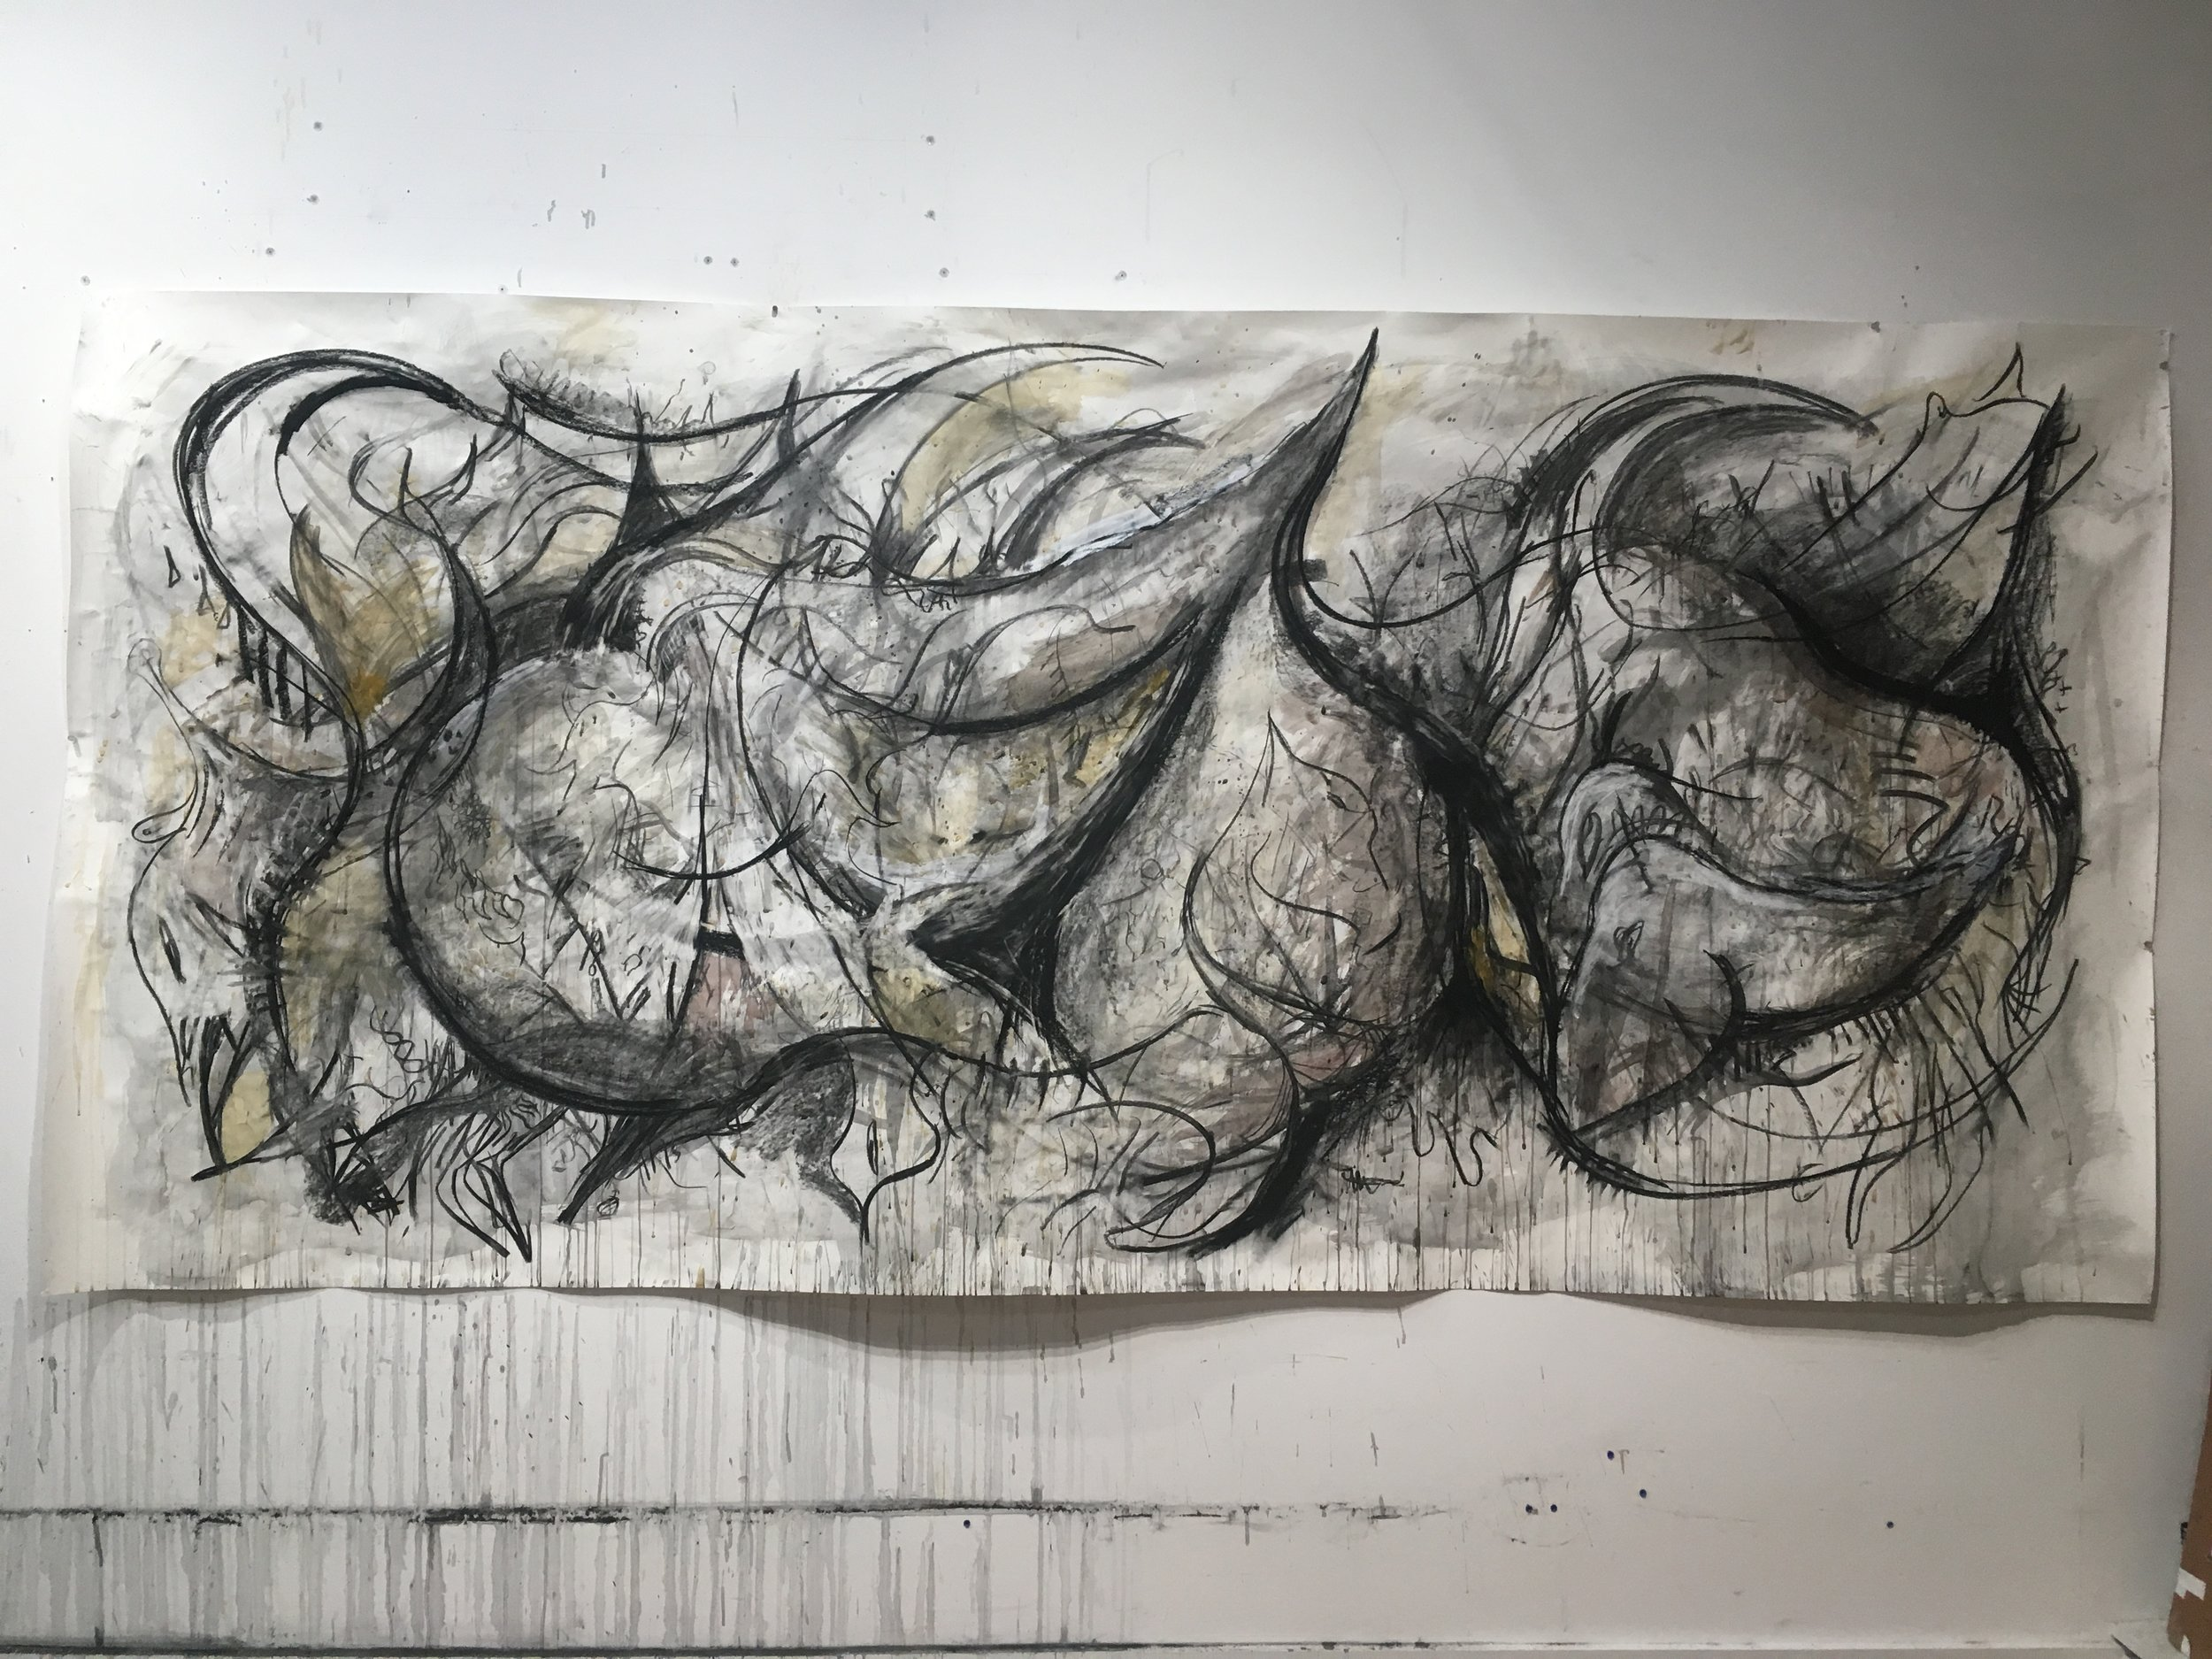 Untitled, 2017 charcoal and ink on paper, 48 x 97 in.